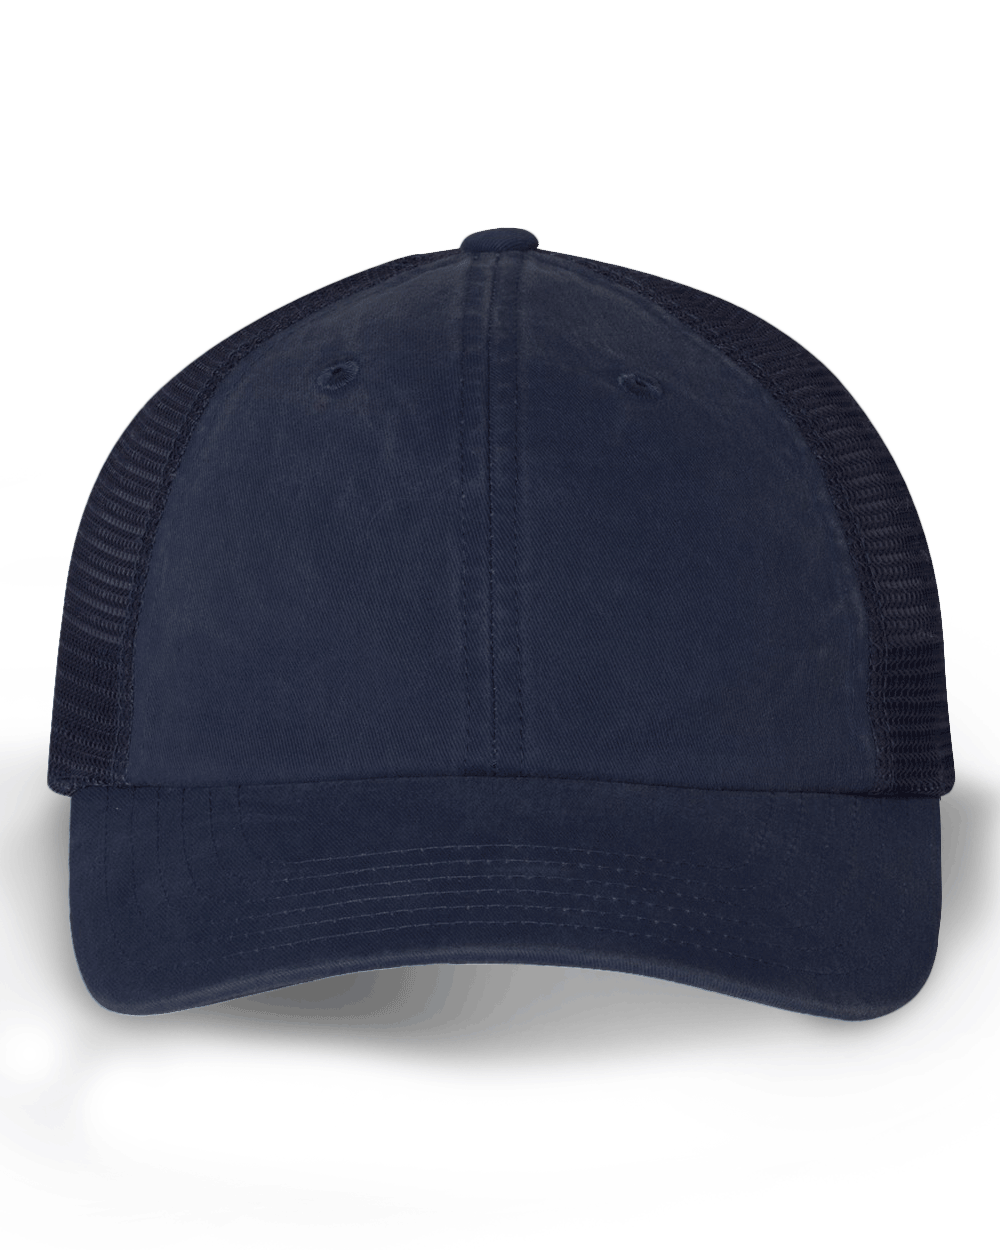 GS - PONYTAIL TRUCKER HATS - STRUCTURED COTTON MESH BACK